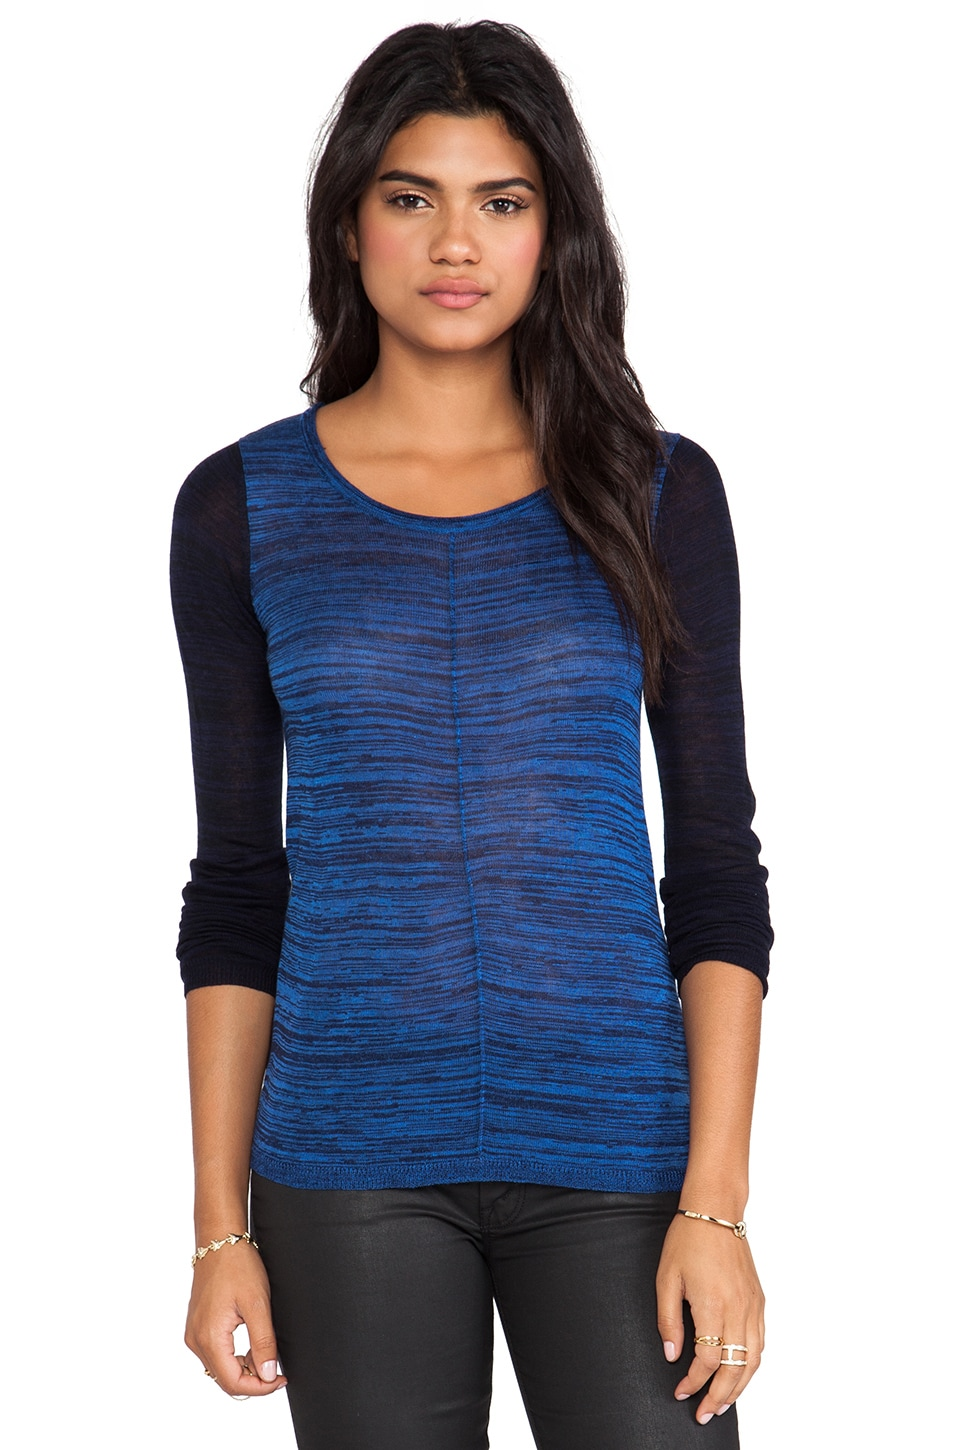 John & Jenn by Line Corie Colorblock Sweater in Colonize Blue